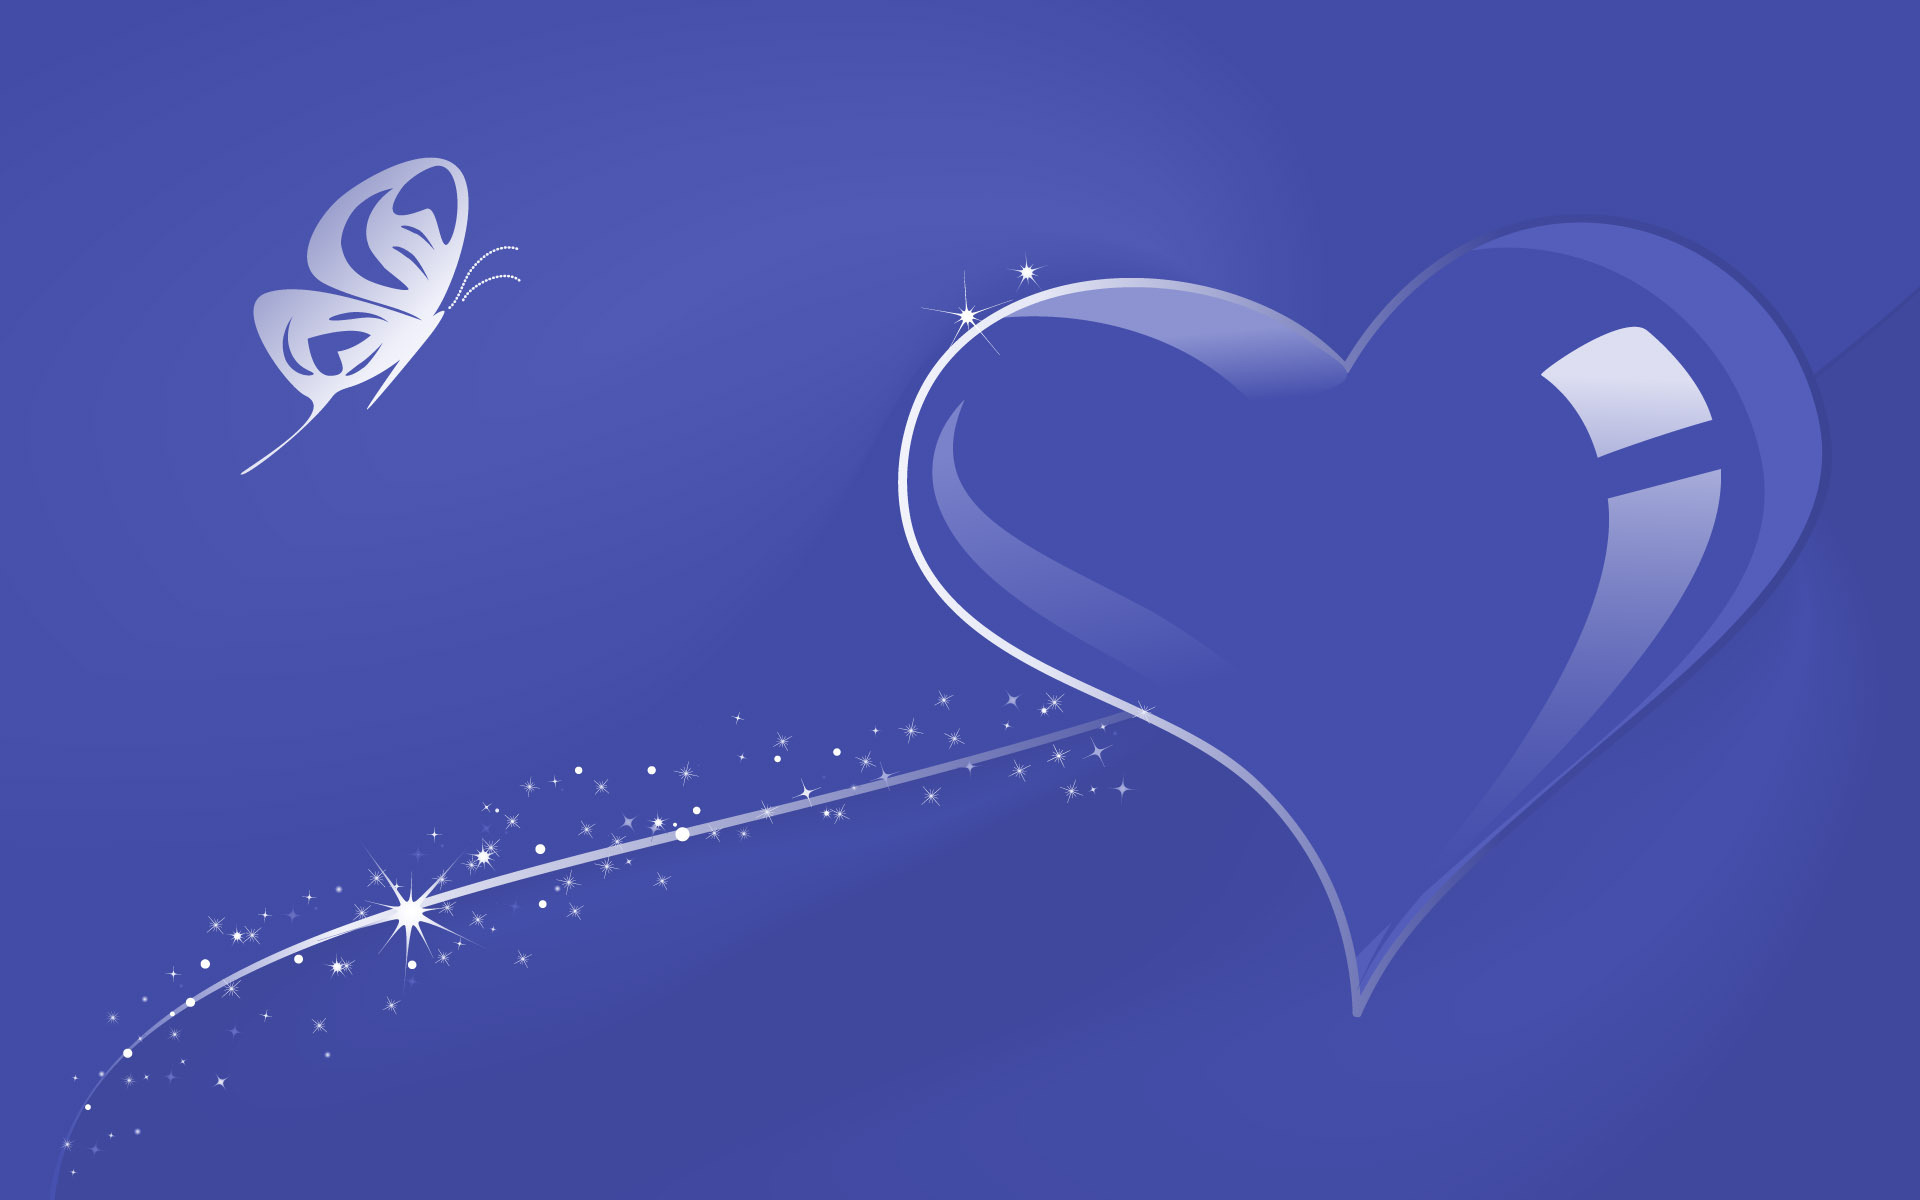 Love Wallpaper Logo : Love images Love wallpaper HD wallpaper and background photos (4187574)